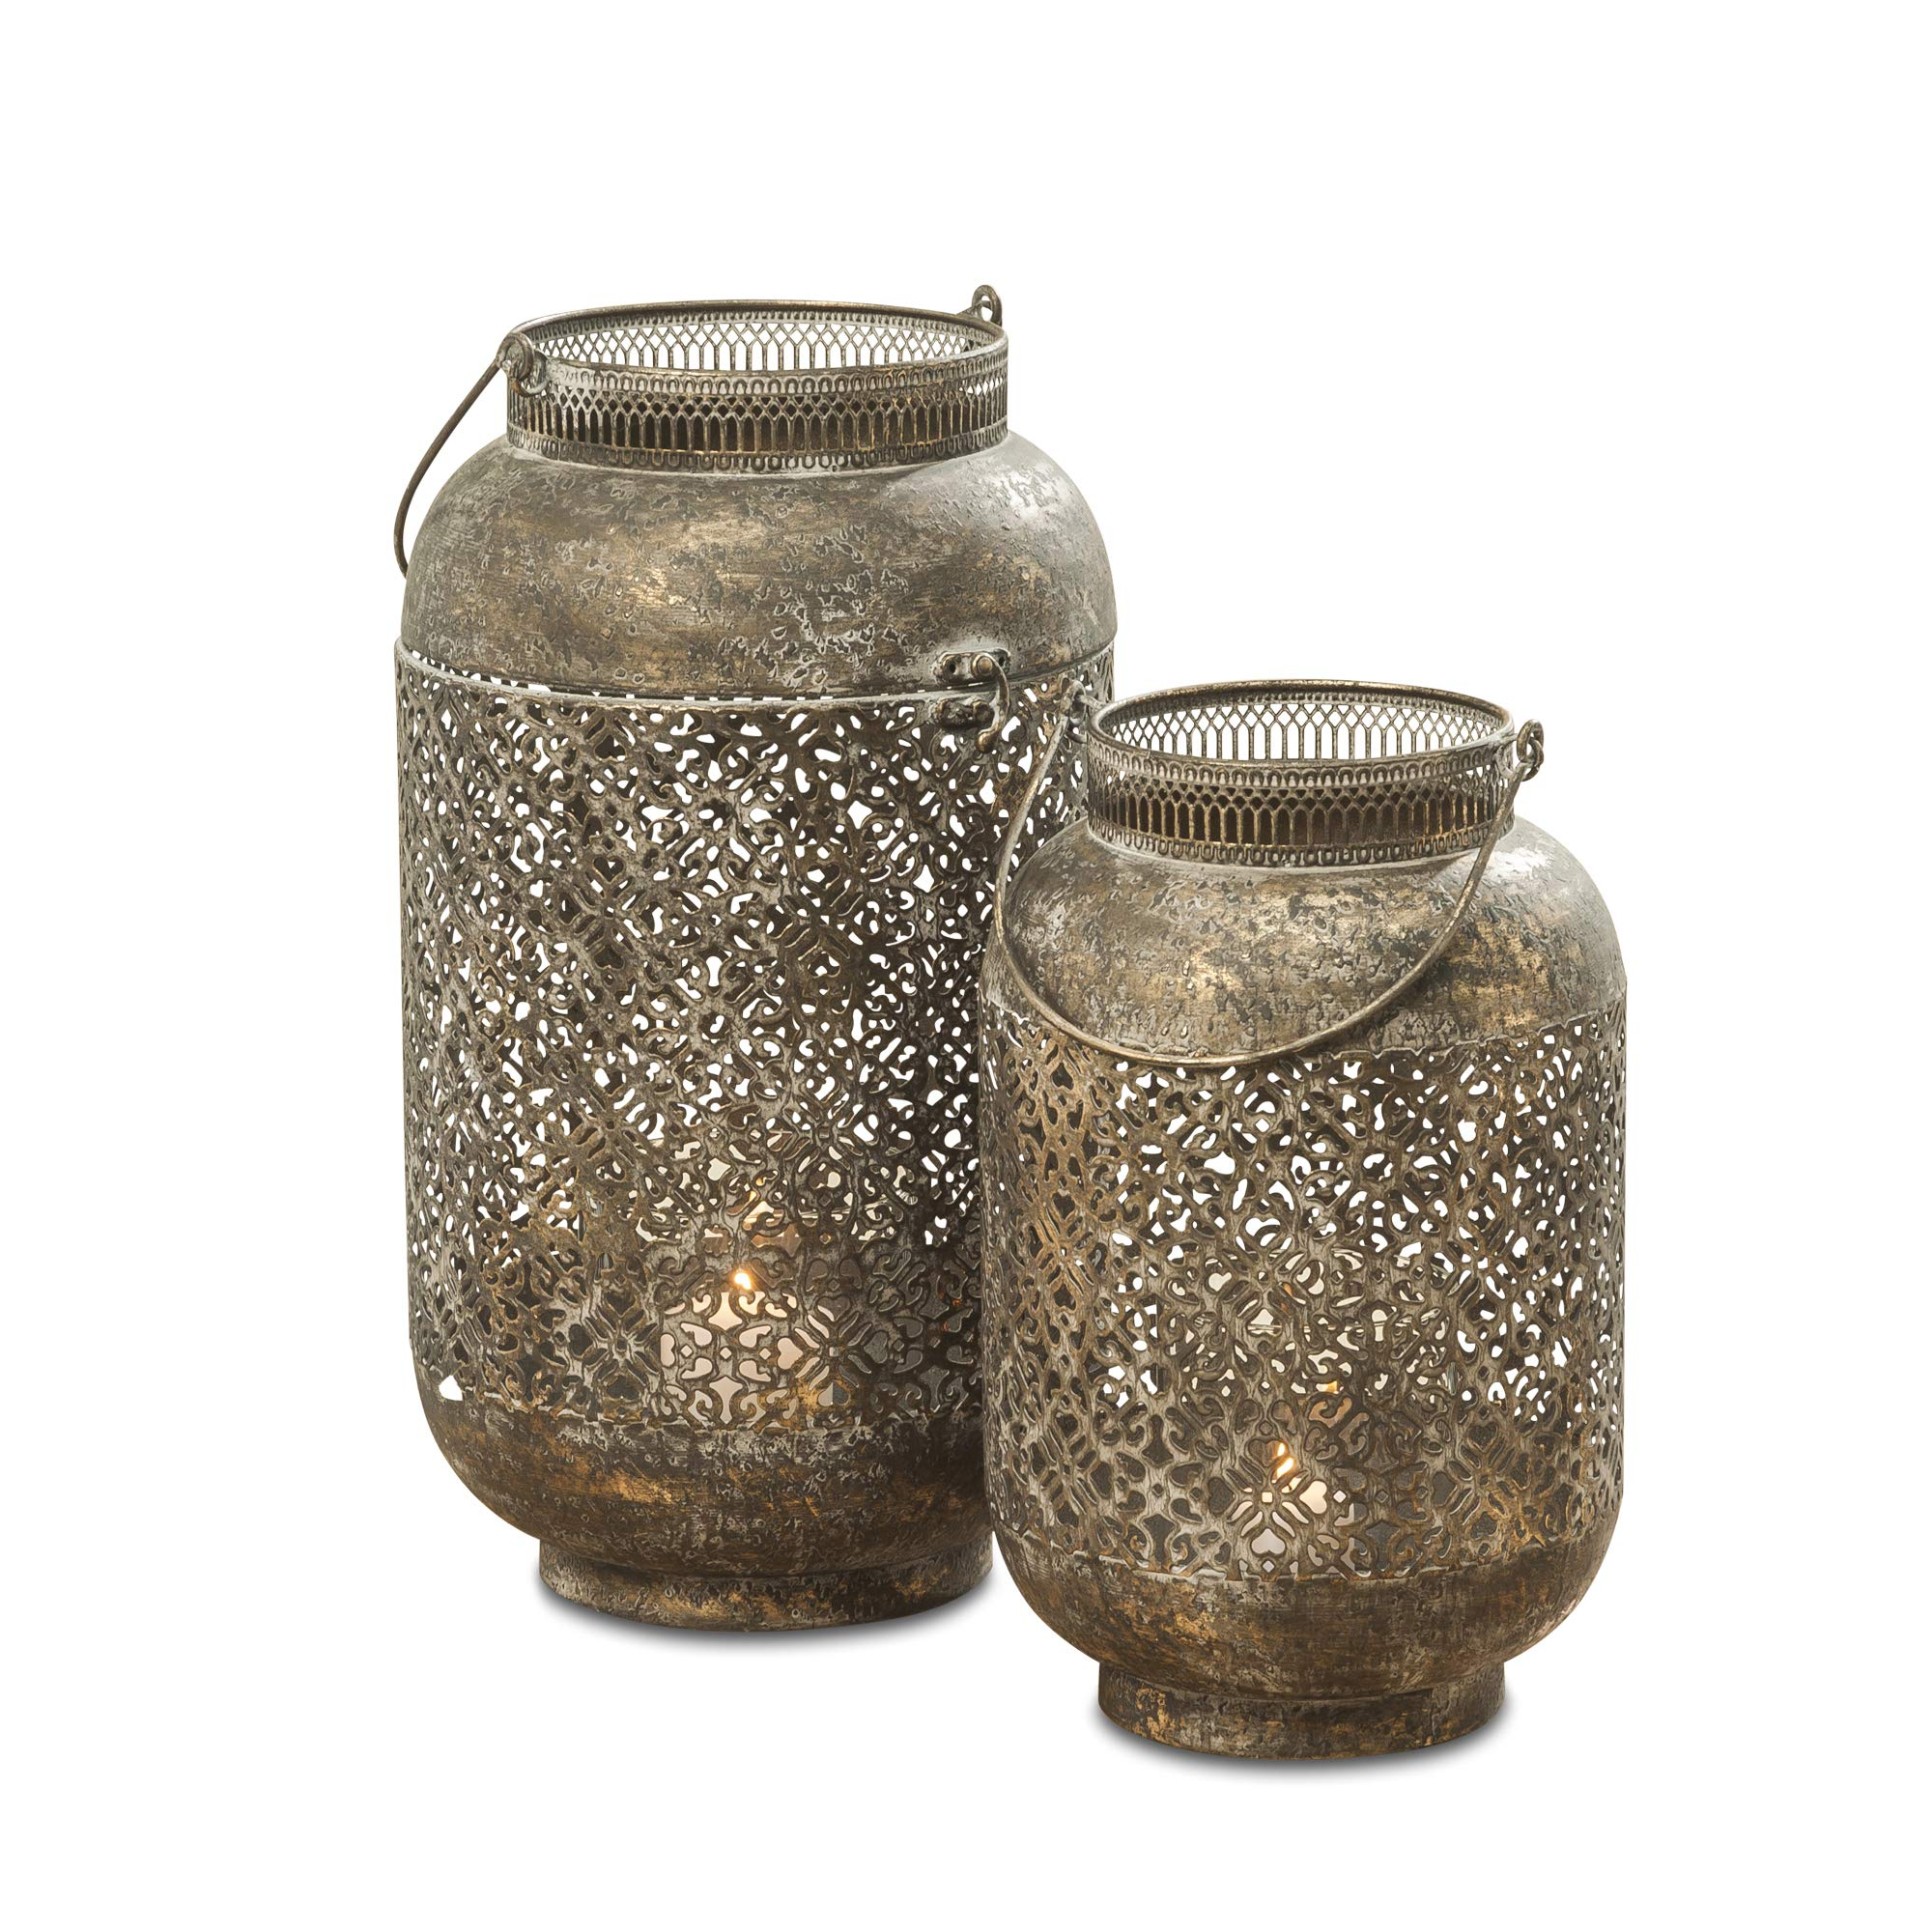 WHW Whole House Worlds Moroccan Temple Lanterns, Set of 2, Hurricanes, Vintage, Lacy Lattice Patterned Bellies, for LED or Wax Candles, Patina Finish Brass Metal, Hinged Top, 17 and 13 Inches Tall